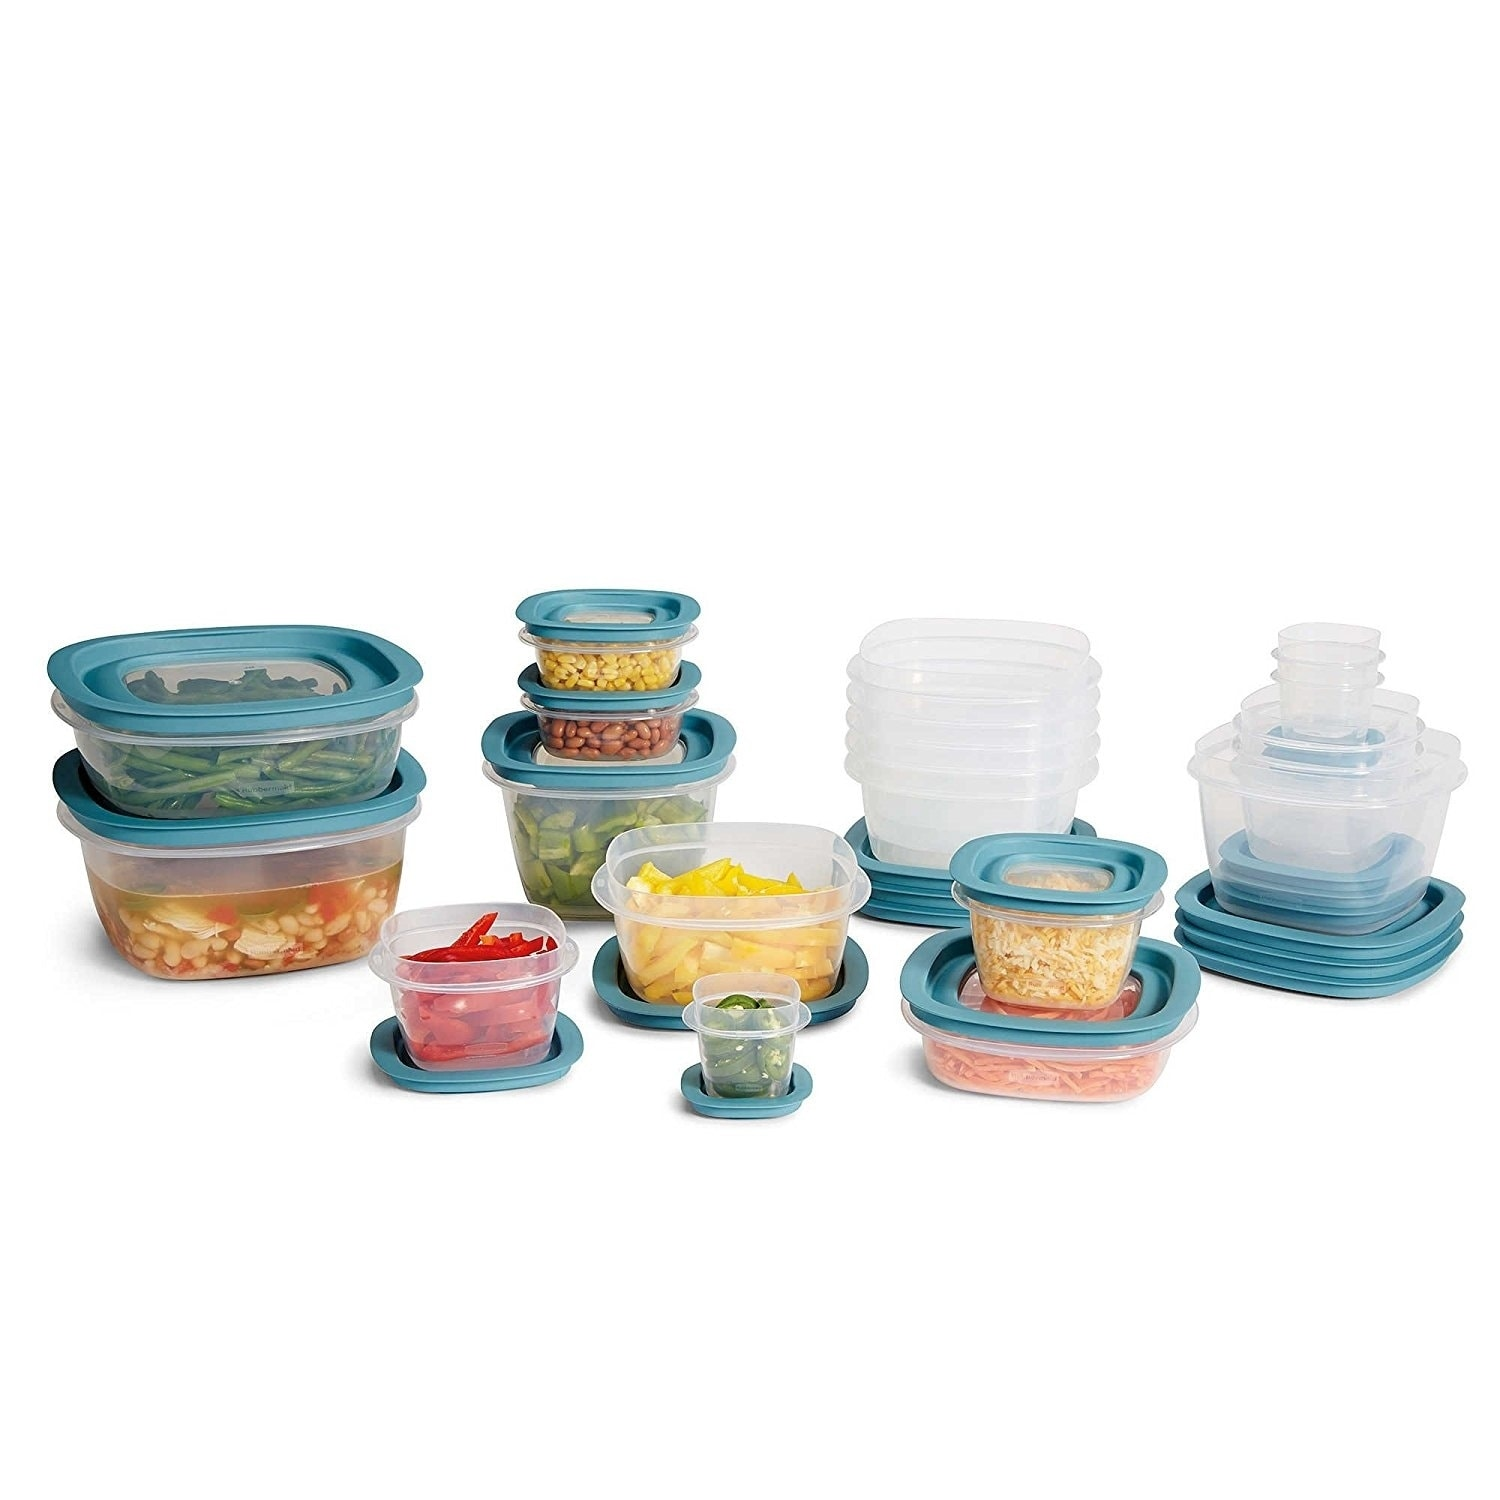 Rubbermaid Flex /& Seal 26 pc Food Storage Container Set ~ Easy Find Lids ~ Blue